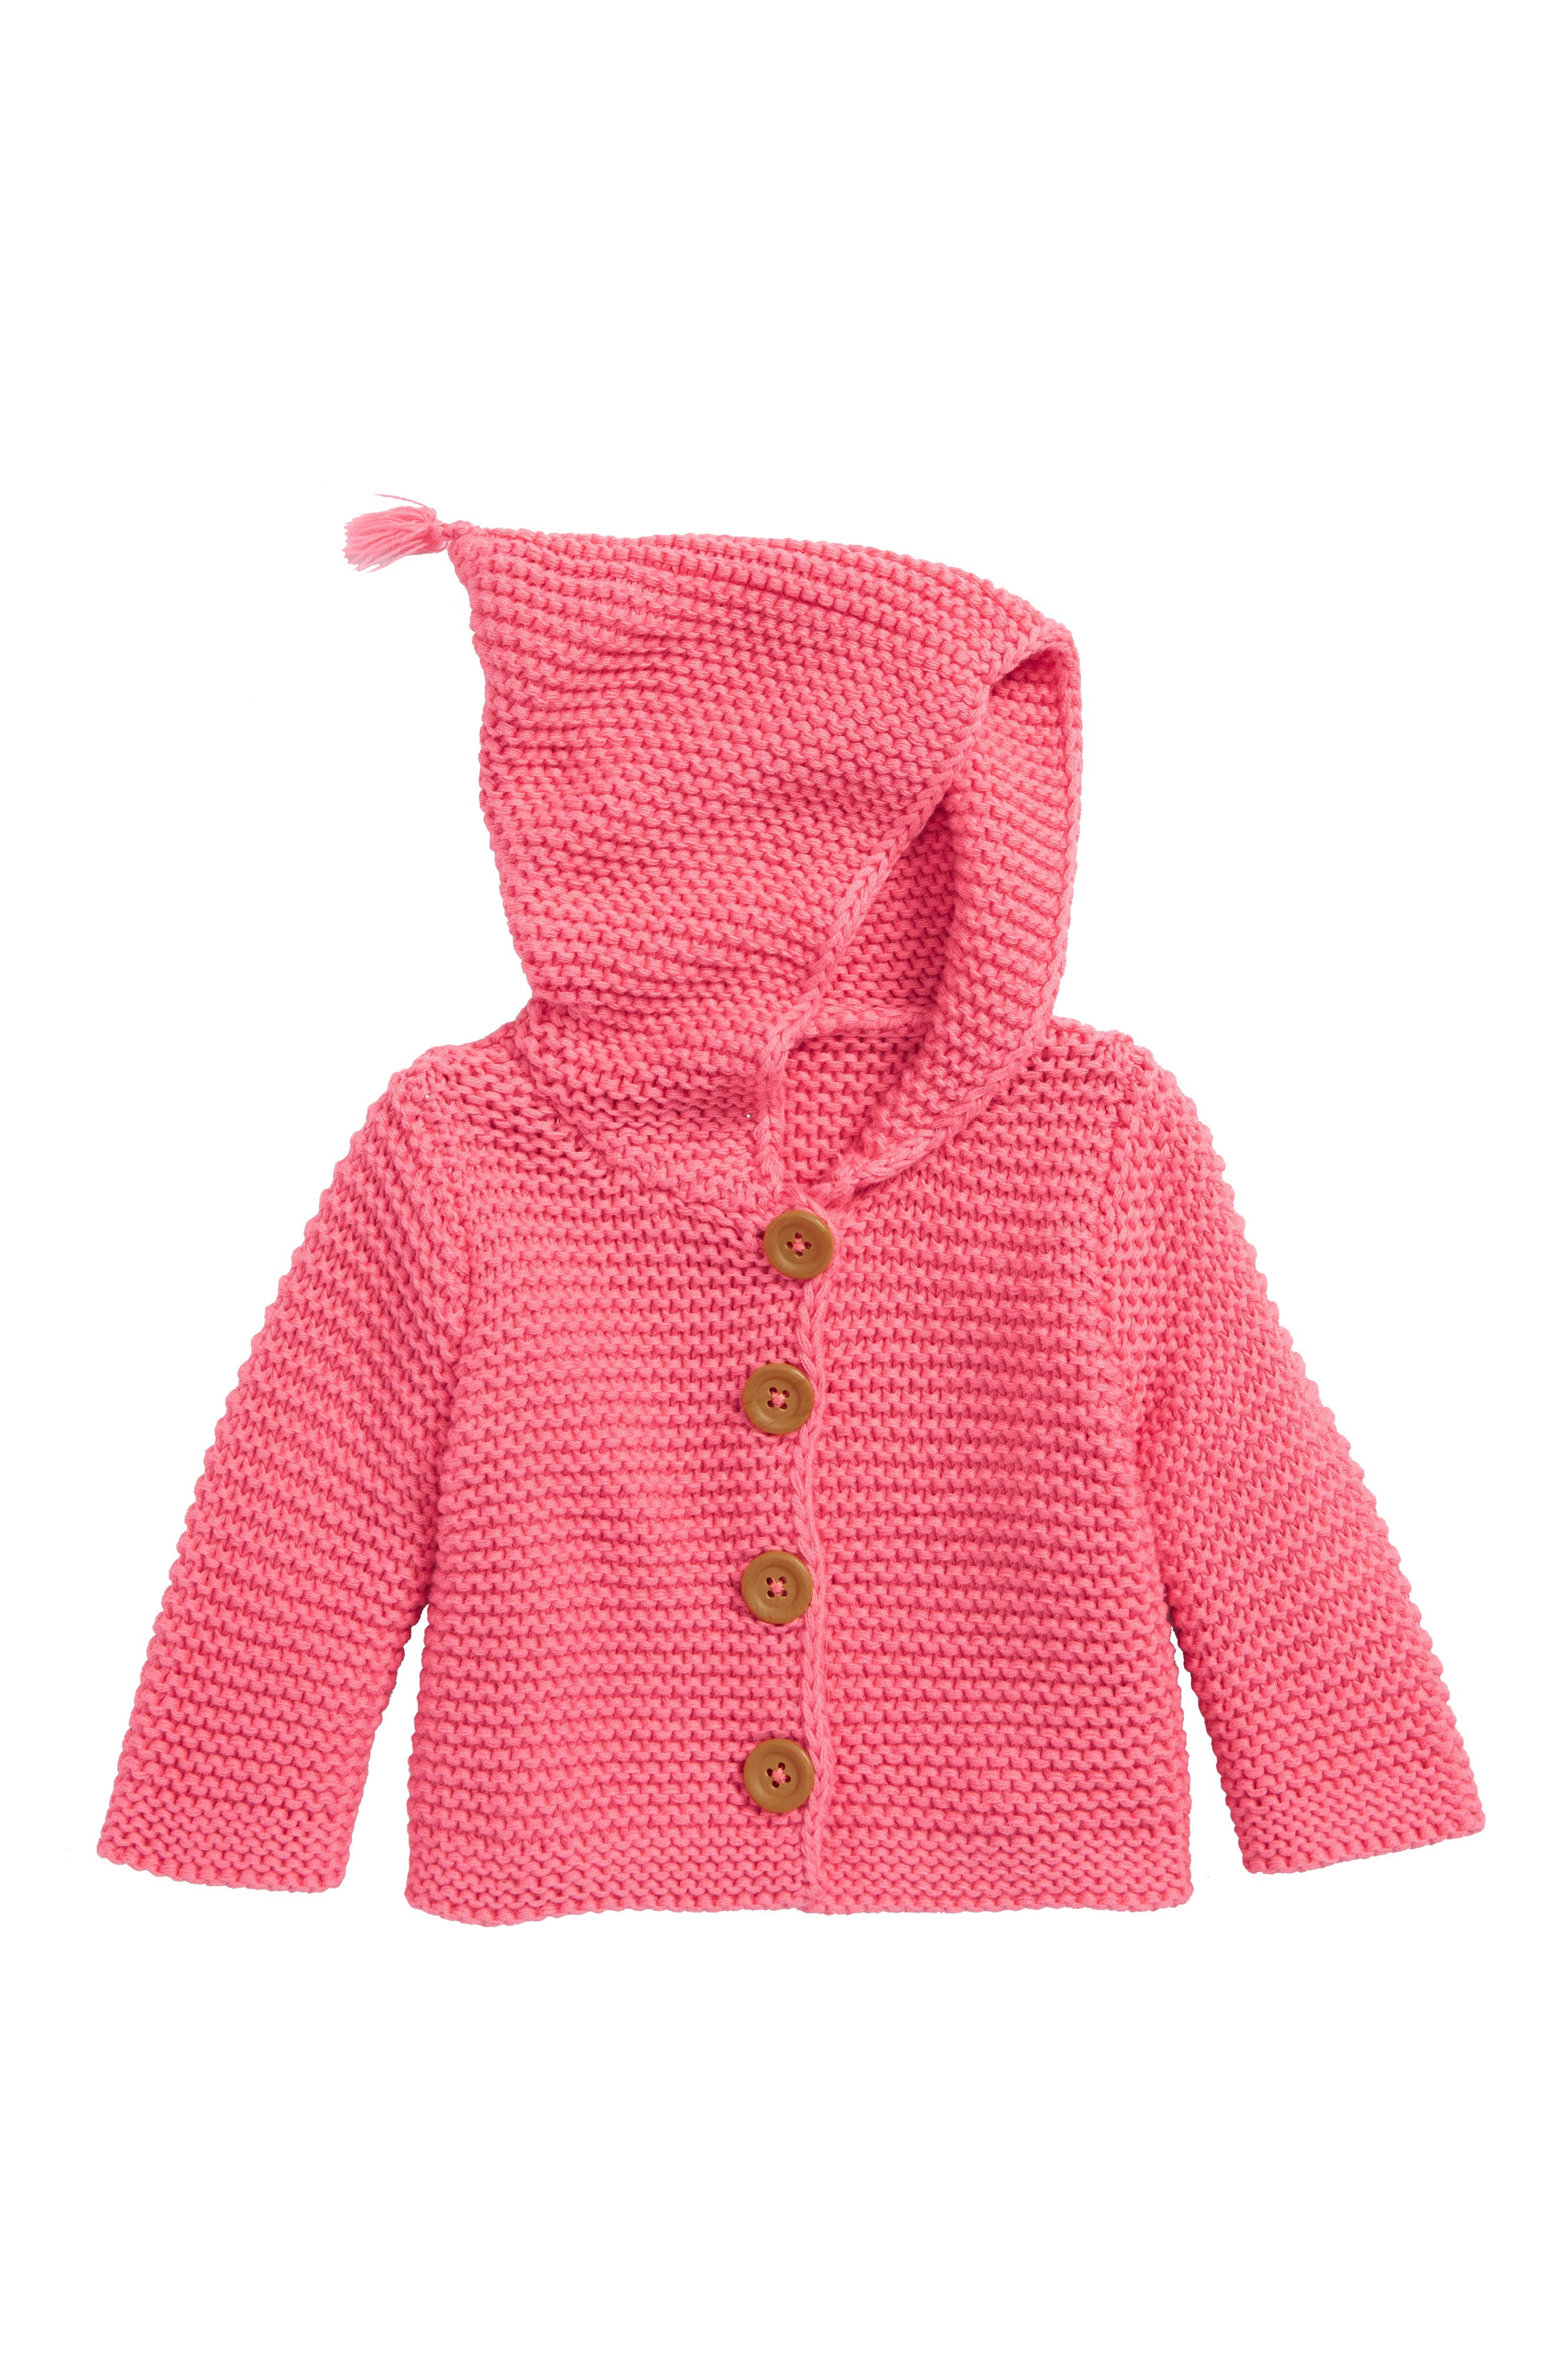 Lofty Organic Cotton Hooded Cardigan,                             Main thumbnail 1, color,                             651